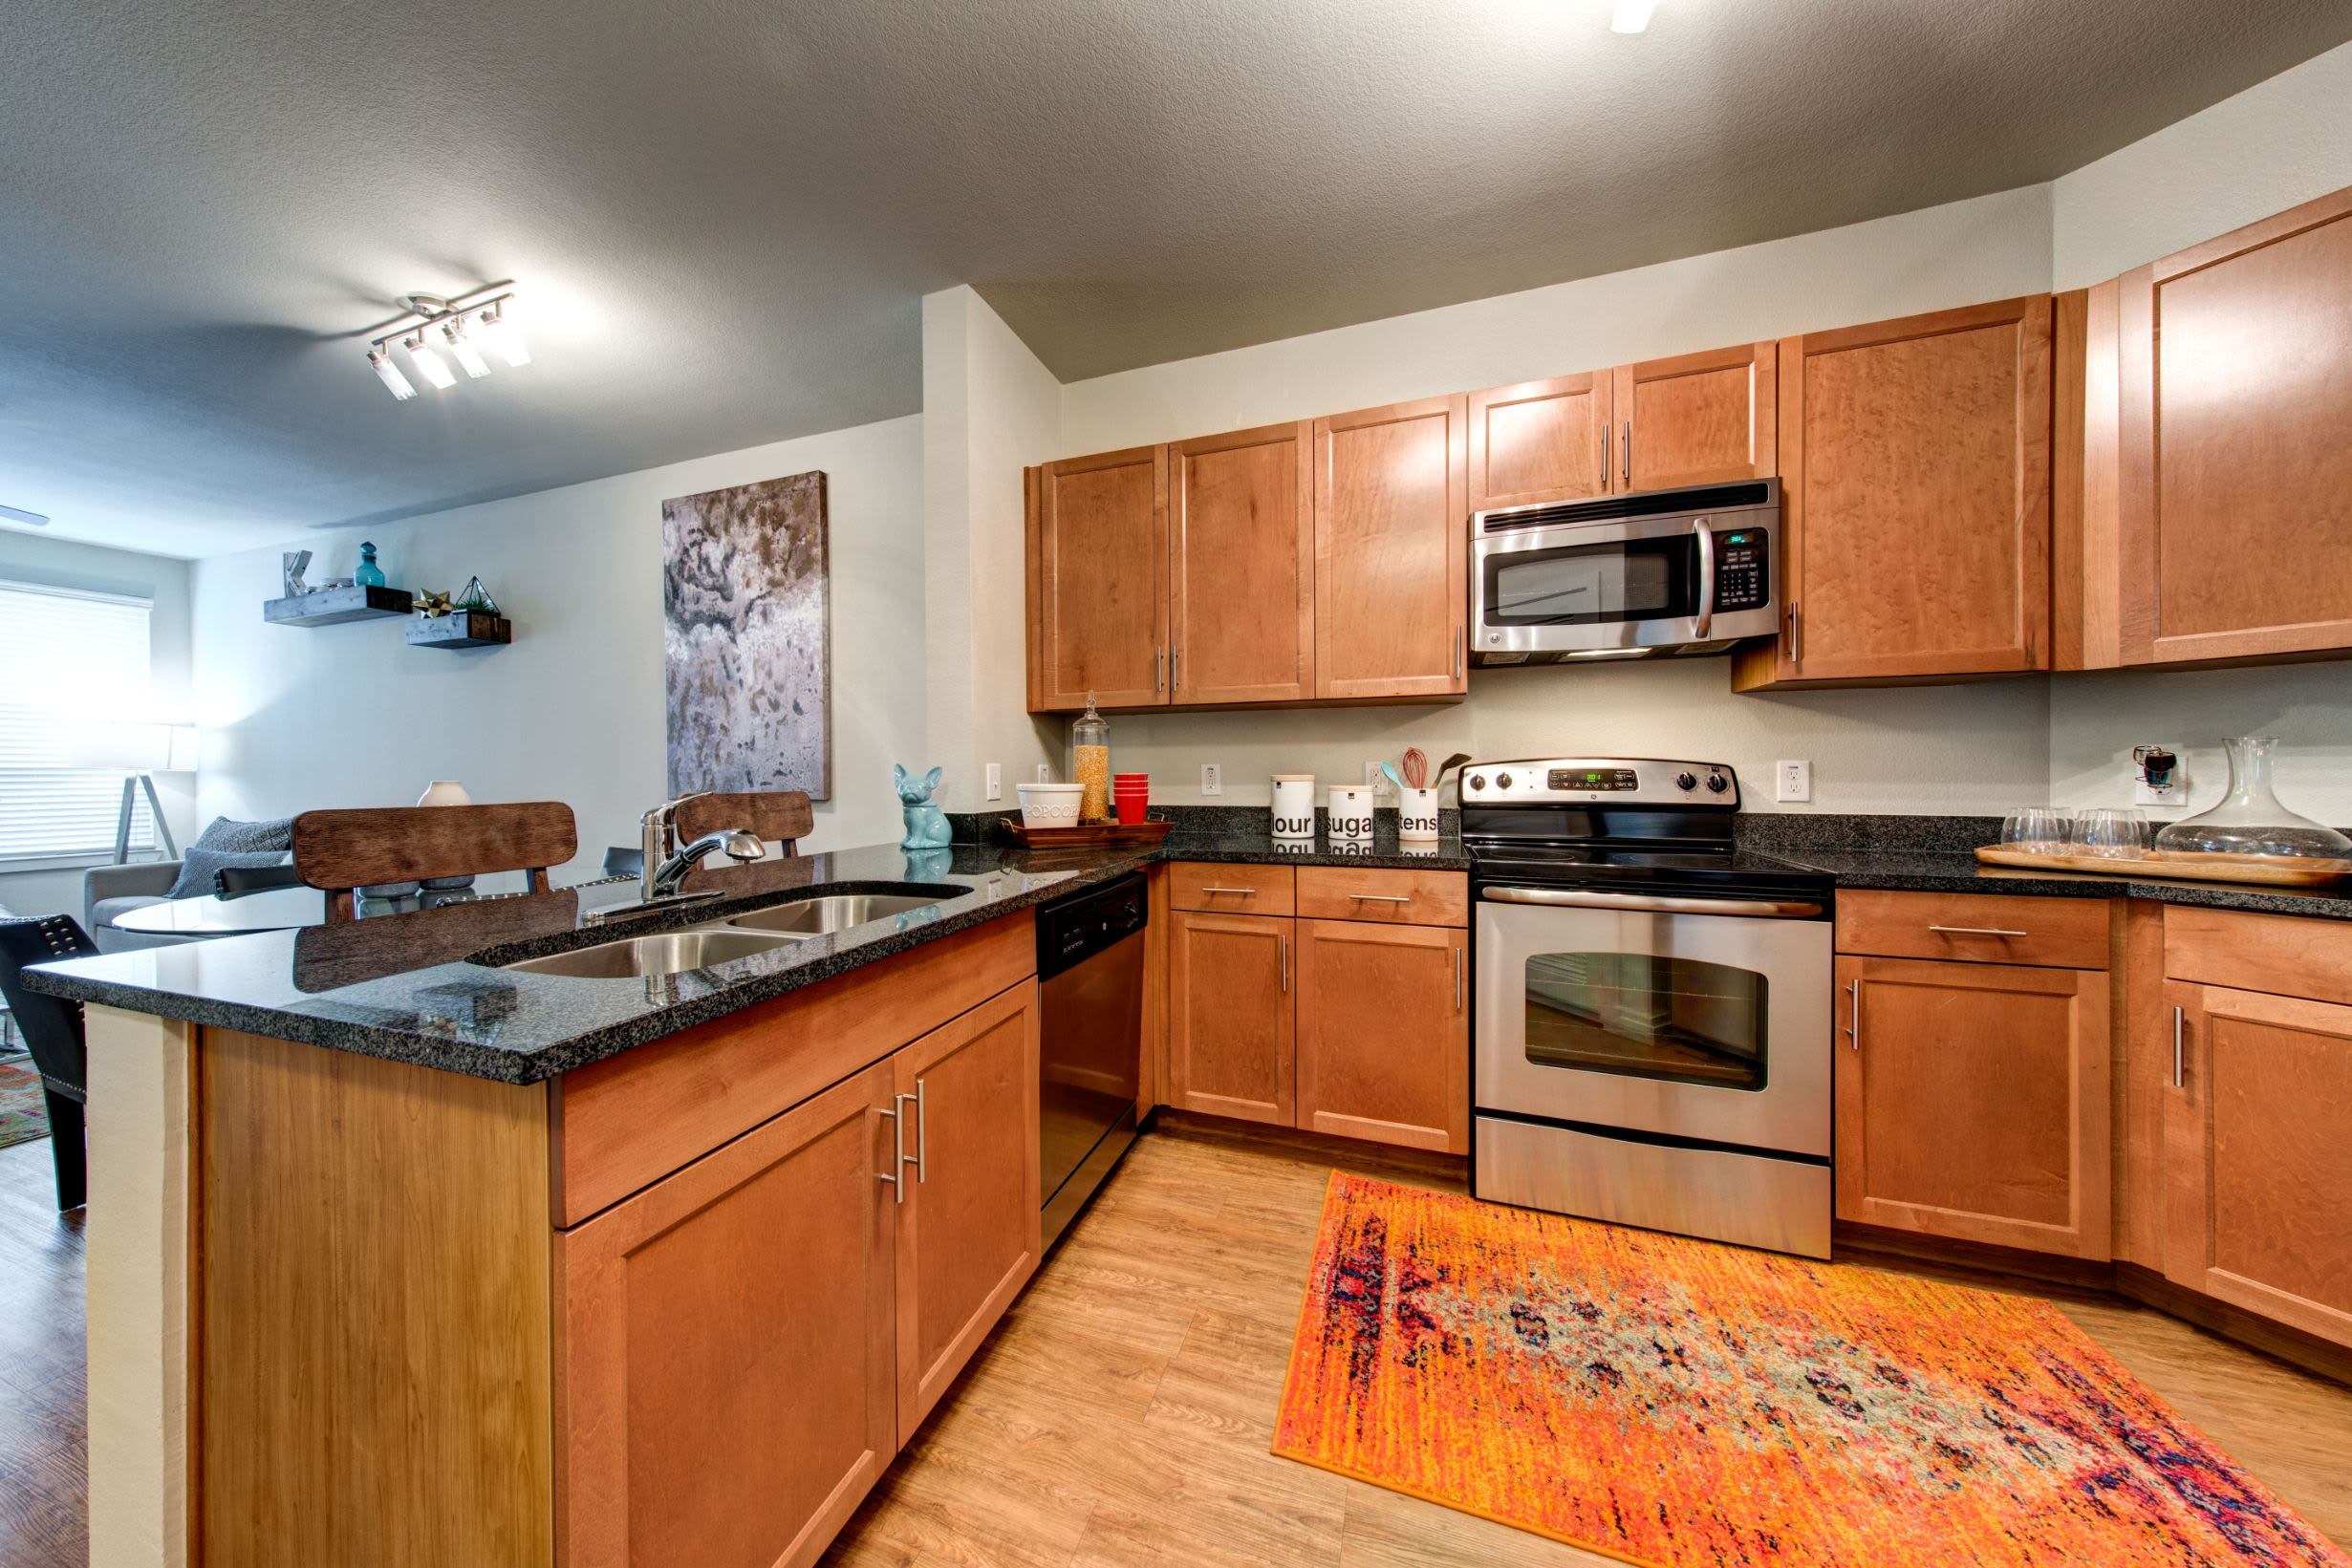 Kitchen with modern appliances and wood floors at The Marq on West 7th in Fort Worth, Texas